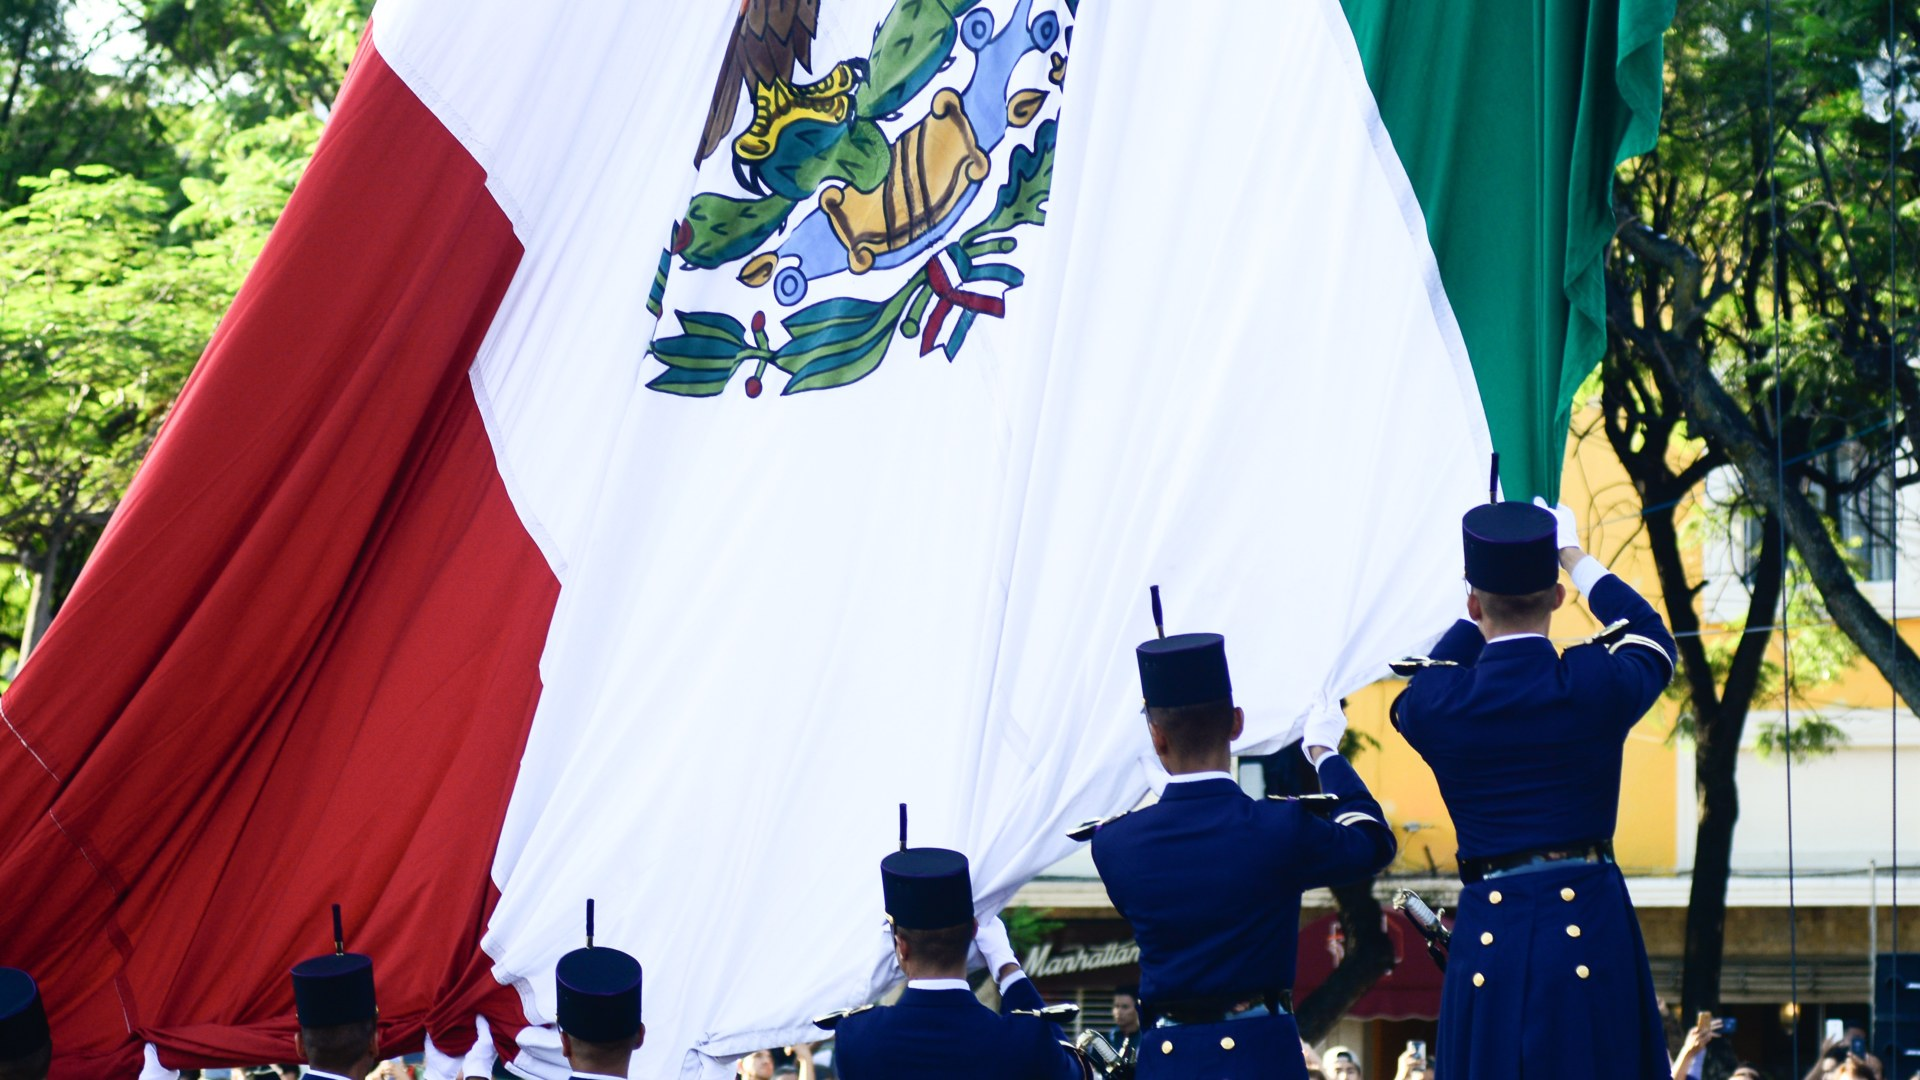 viva mexico le cri de l independance mexique